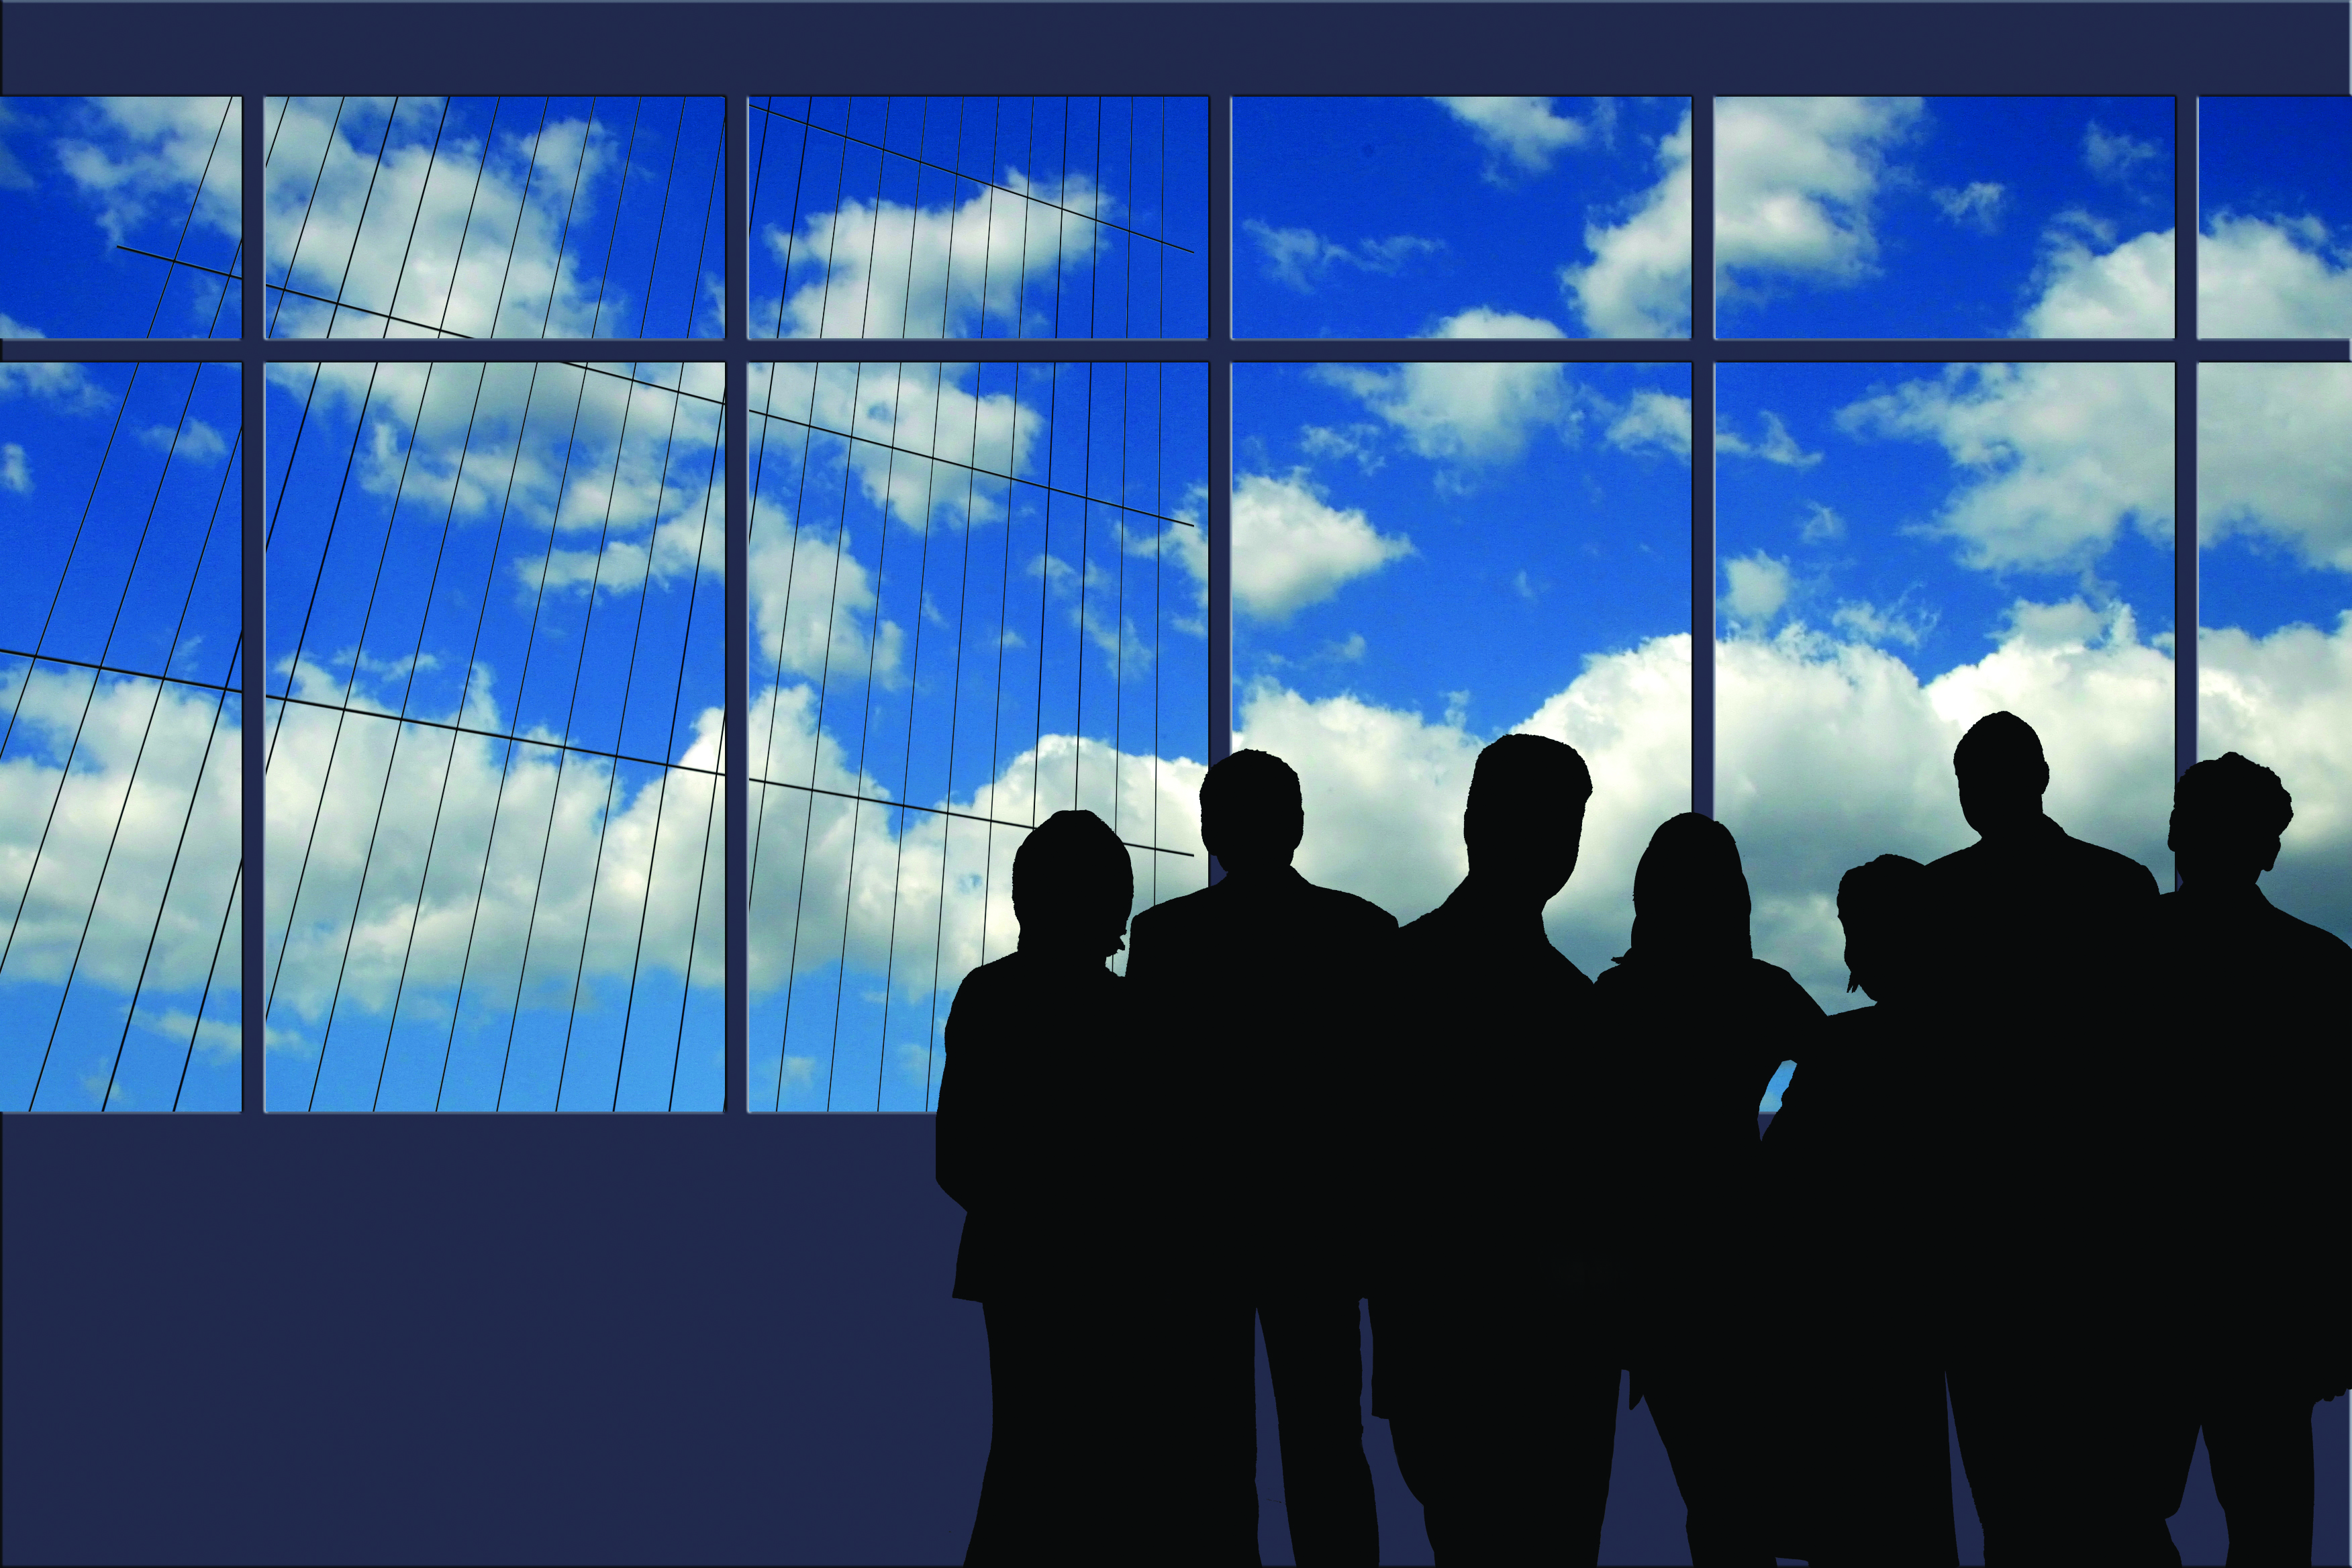 bigstock-A-Business-Team-silhouette-nex-26212253